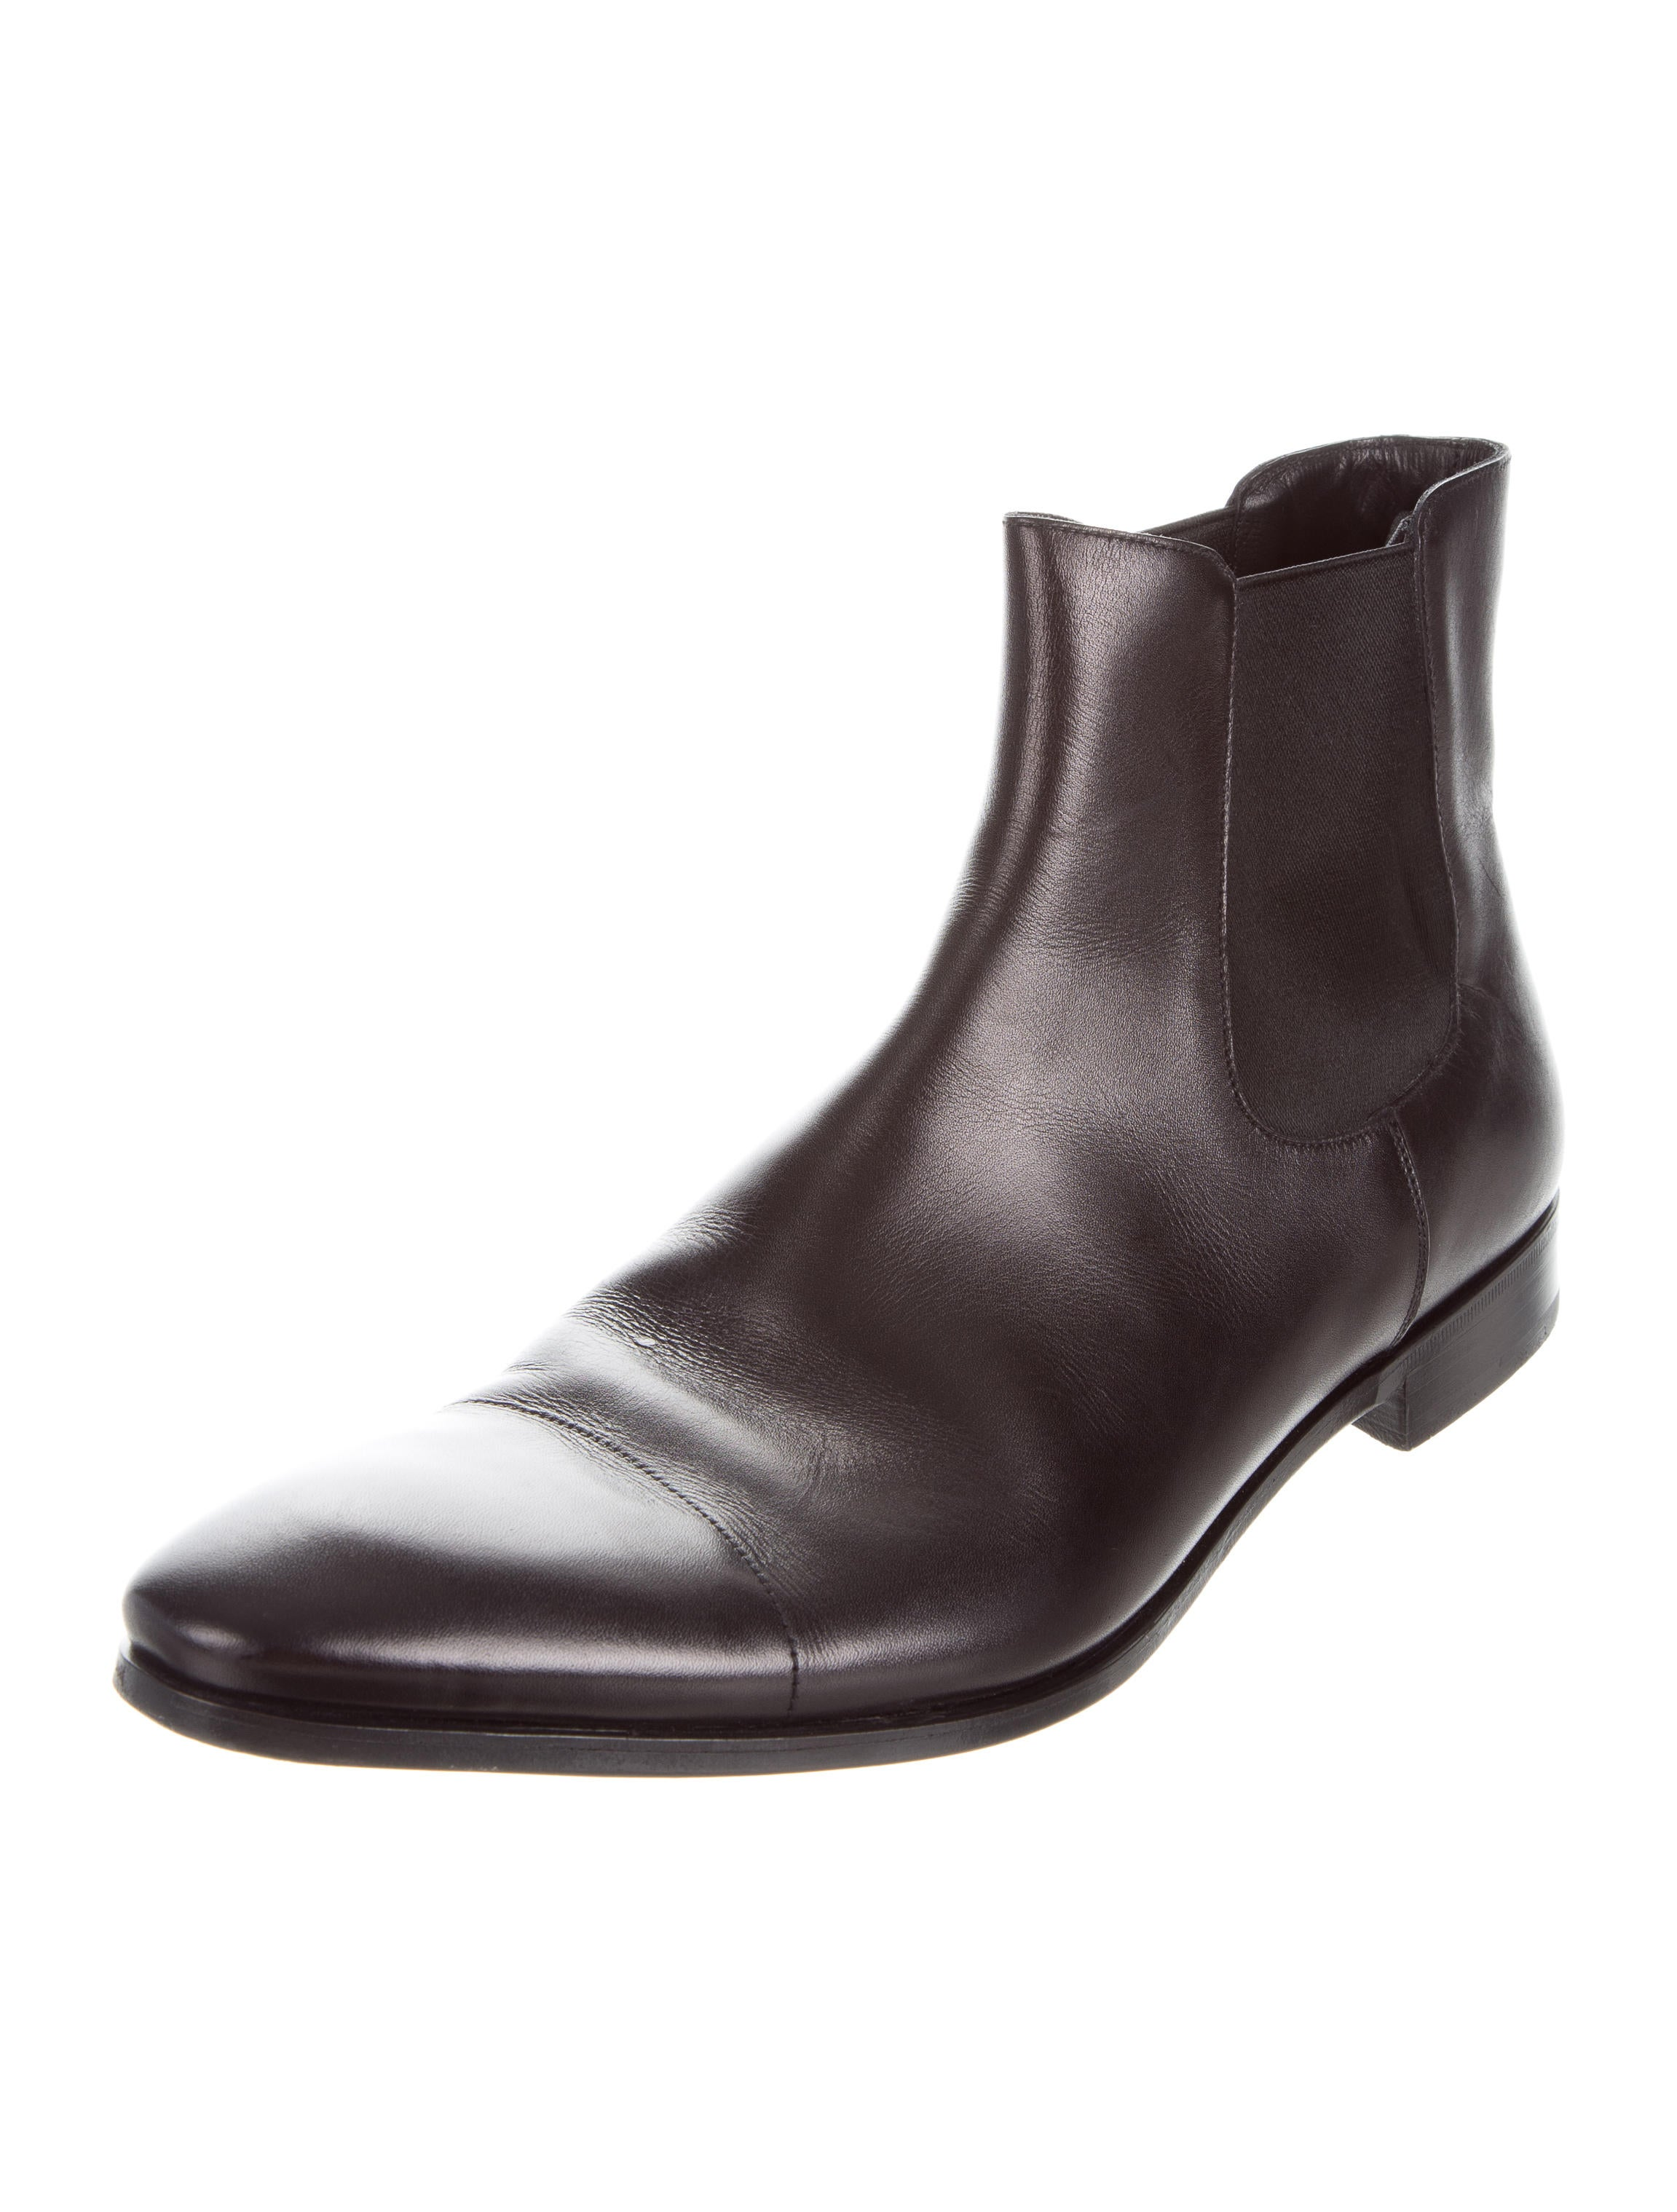 prada leather chelsea boots shoes pra156704 the realreal